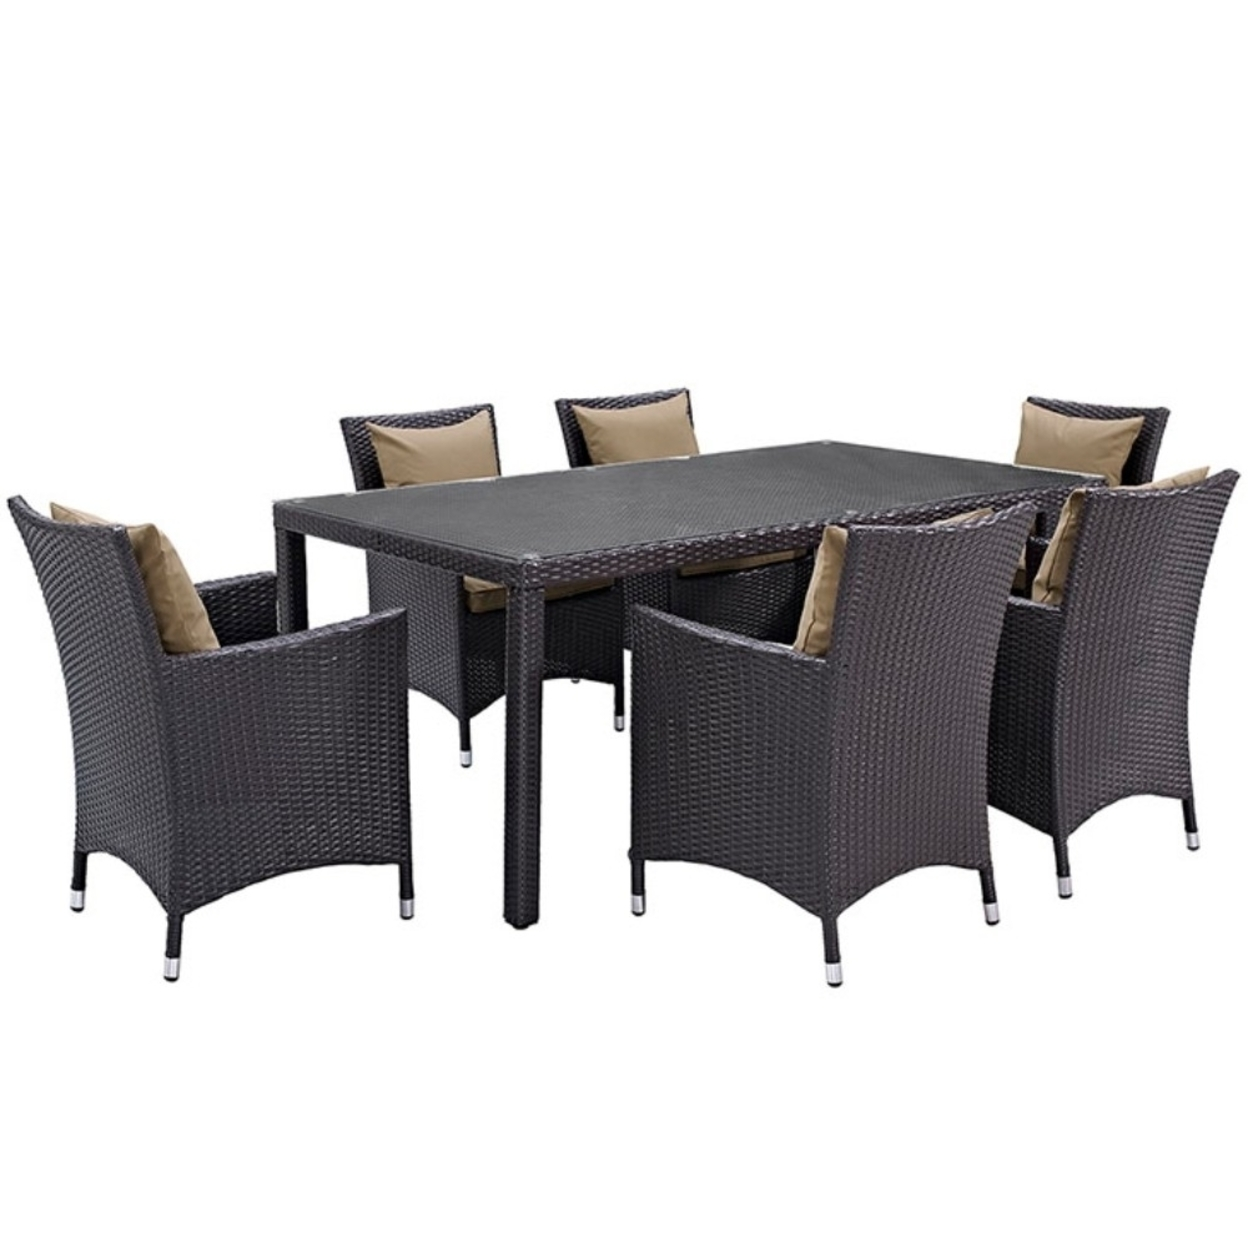 "Convene 7 Piece Outdoor Patio Dining Set, Espresso Mocha Size : 25.5""lx24.5\""wx34.5\""h"